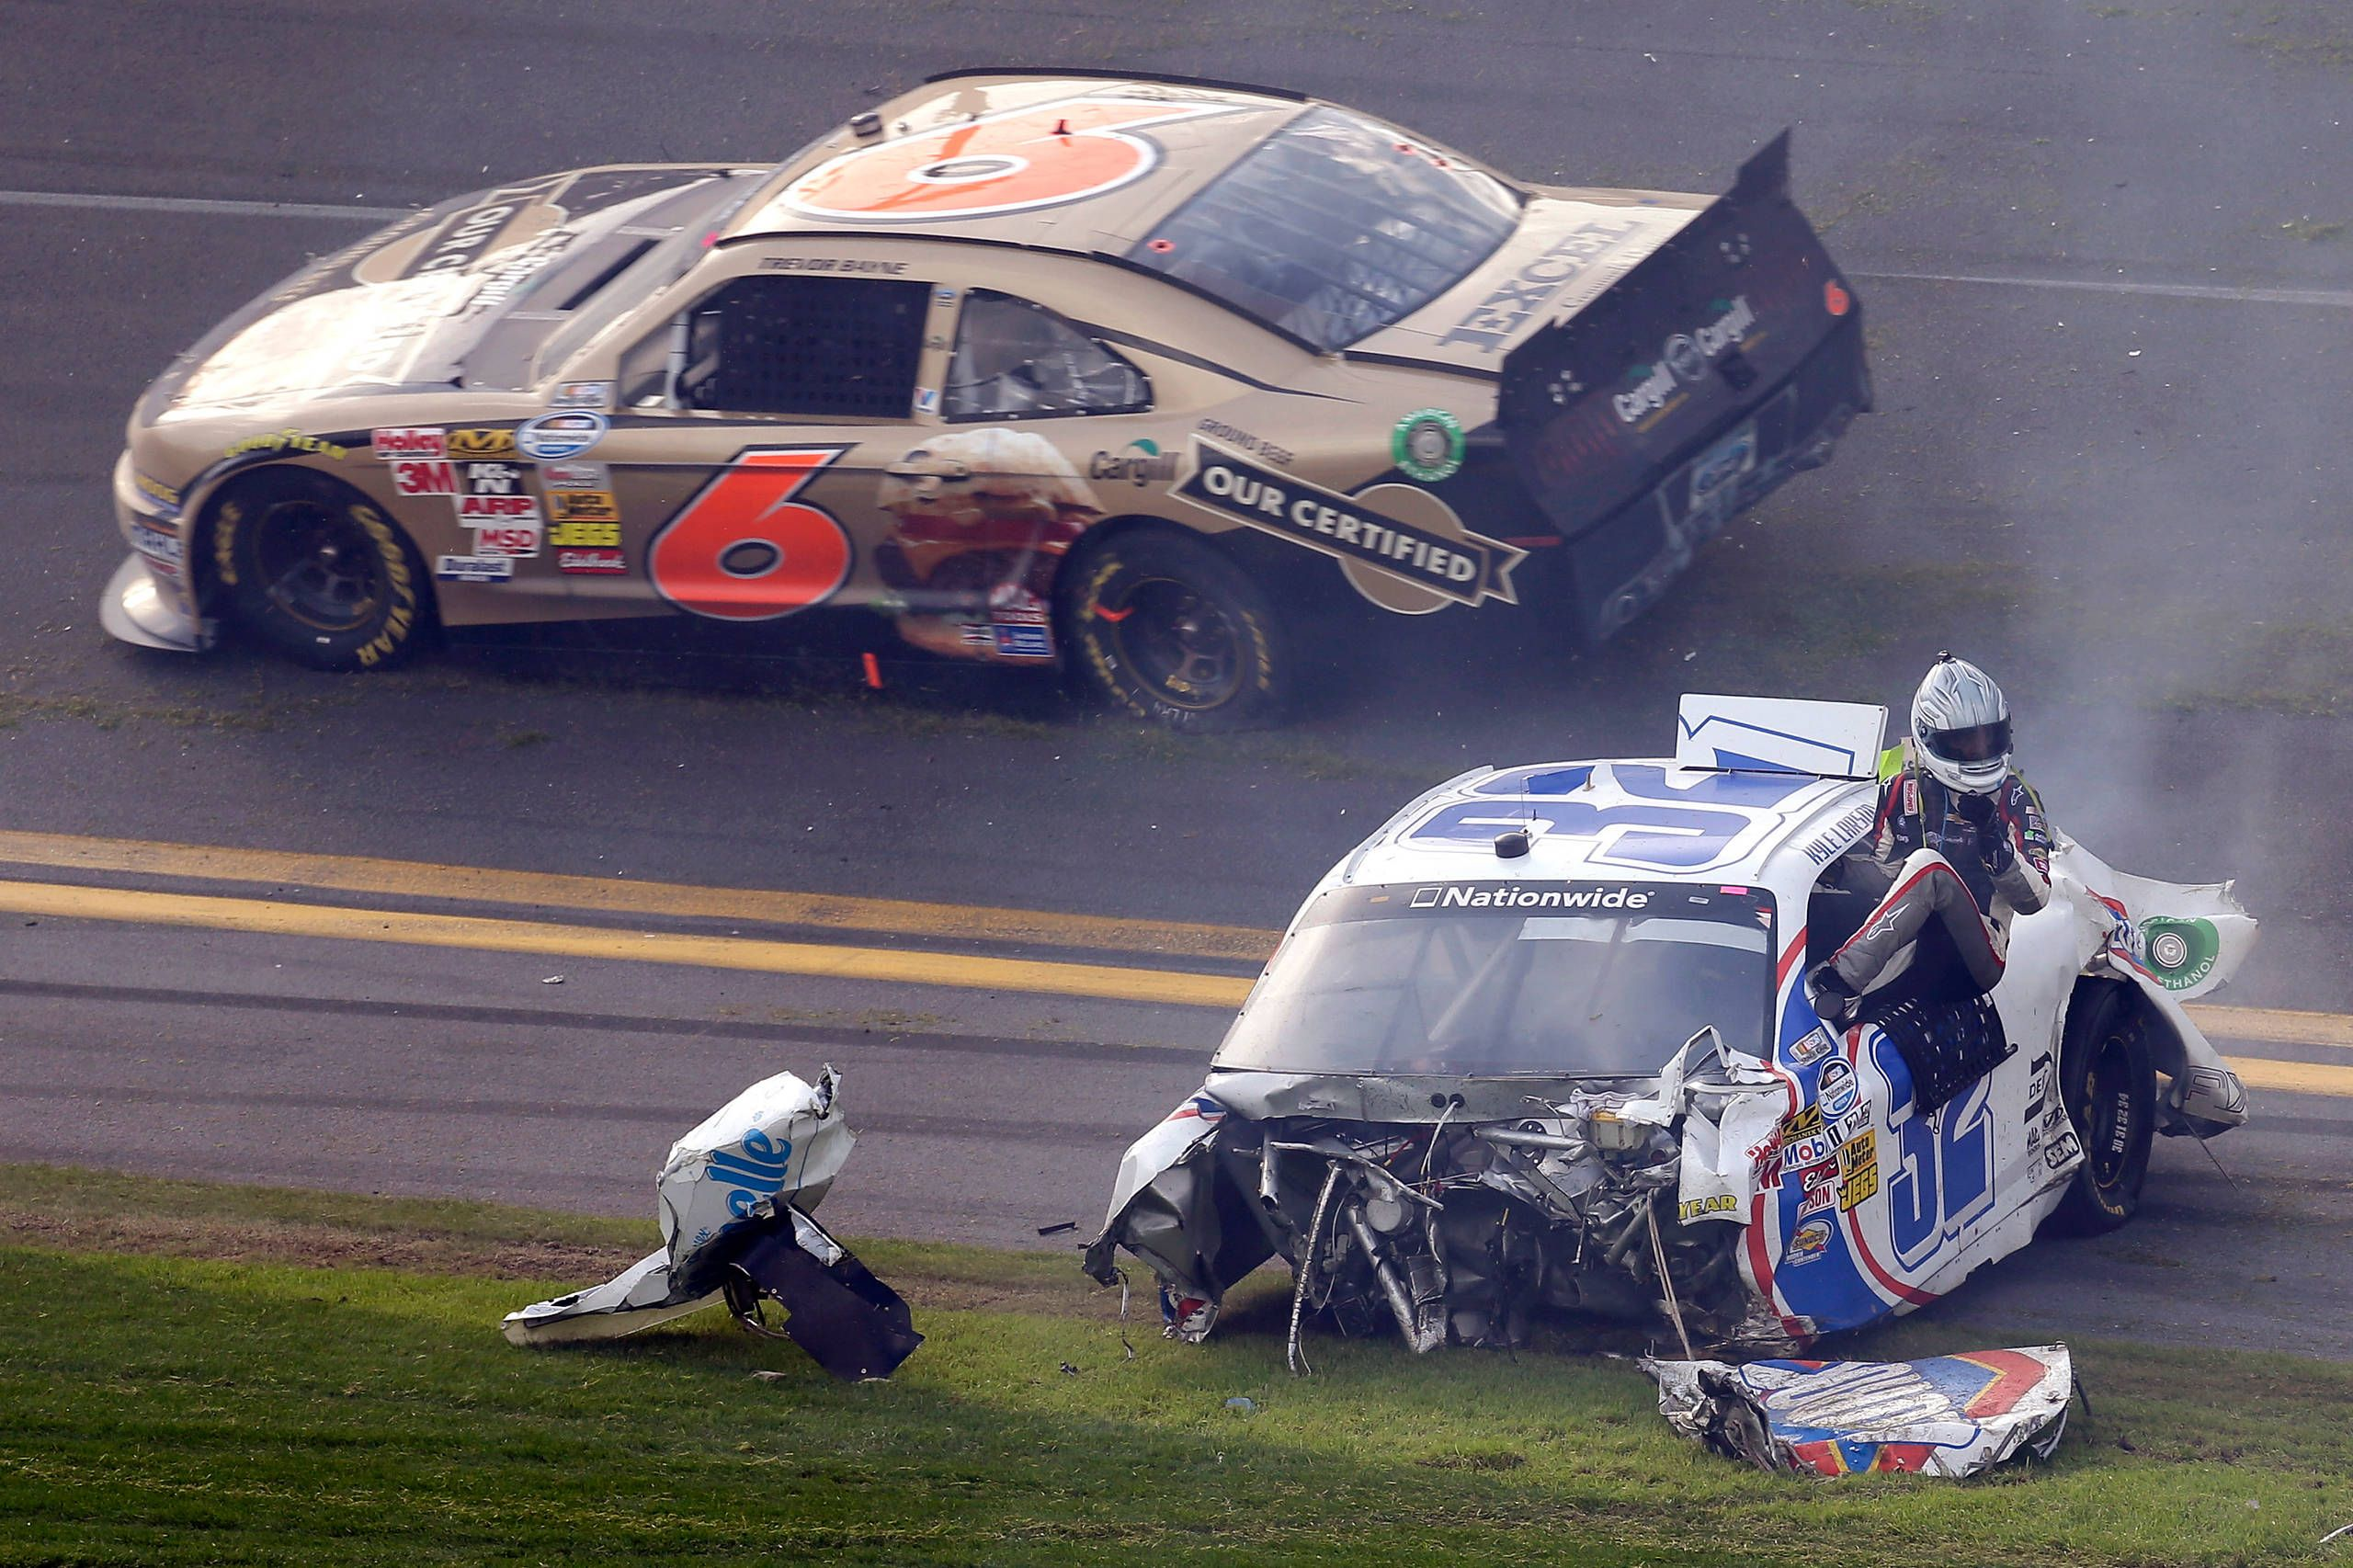 Wreck during last lap of NASCAR Nationwide race at Daytona | random ...